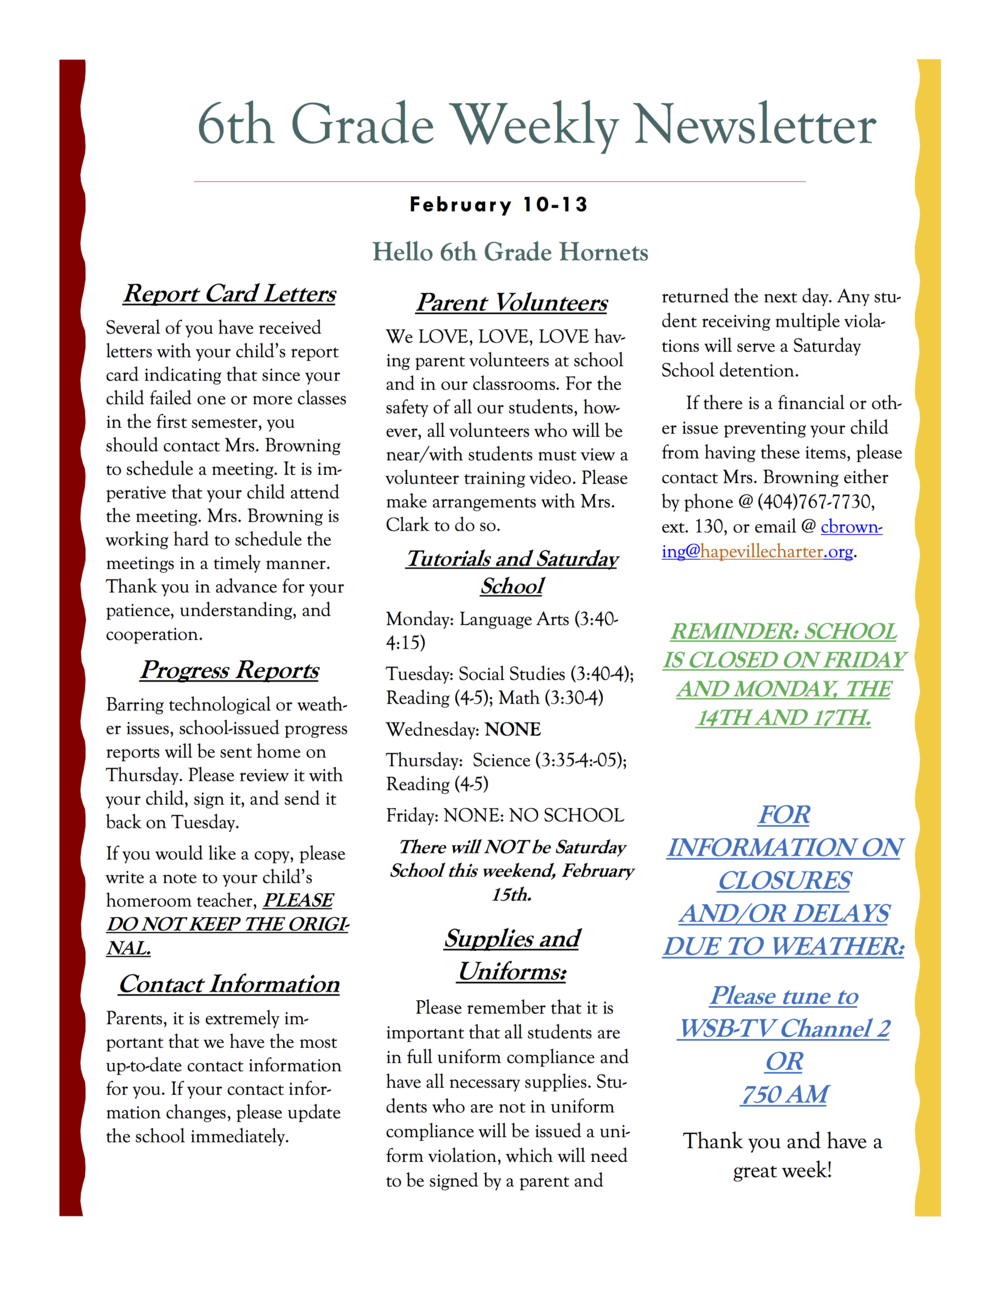 6th grade February 10-13A.png